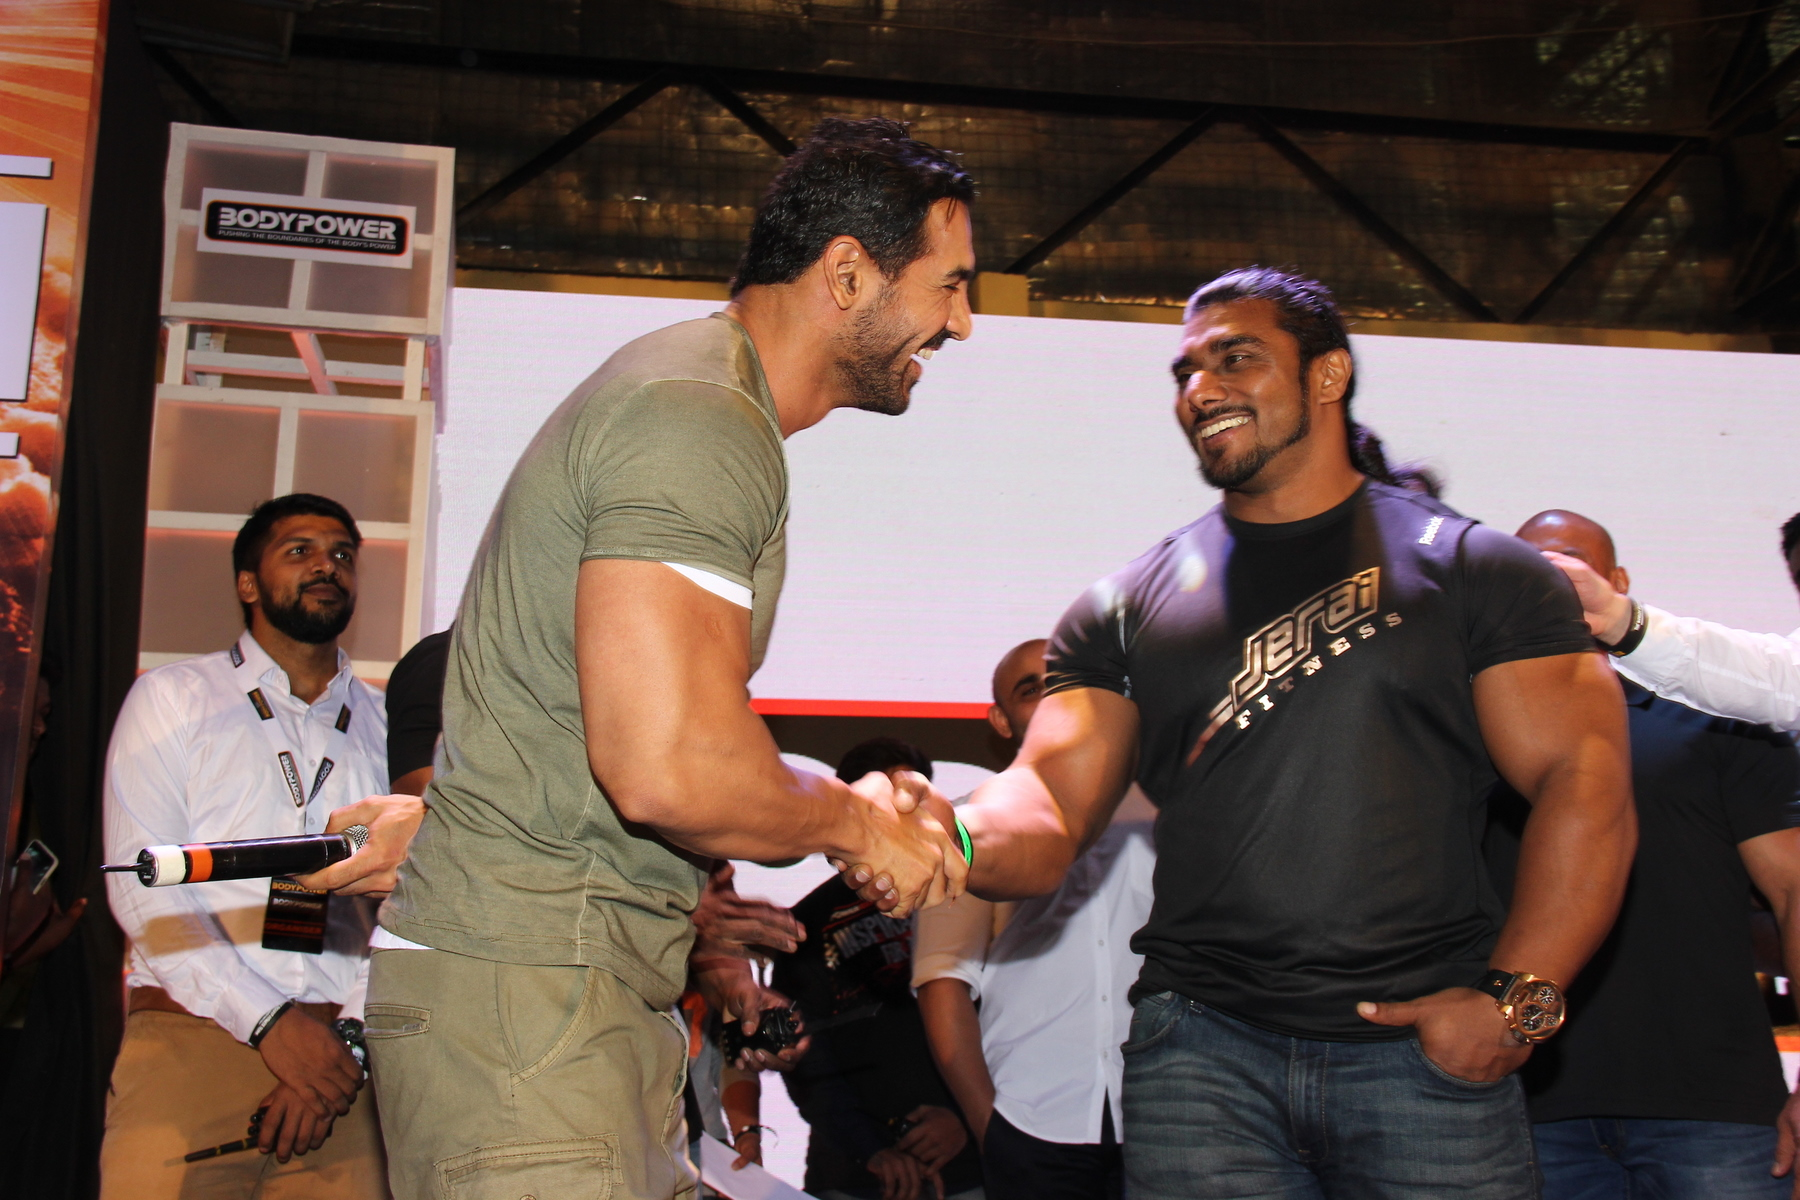 Pin John Abraham Body Building Workout on Pinterest